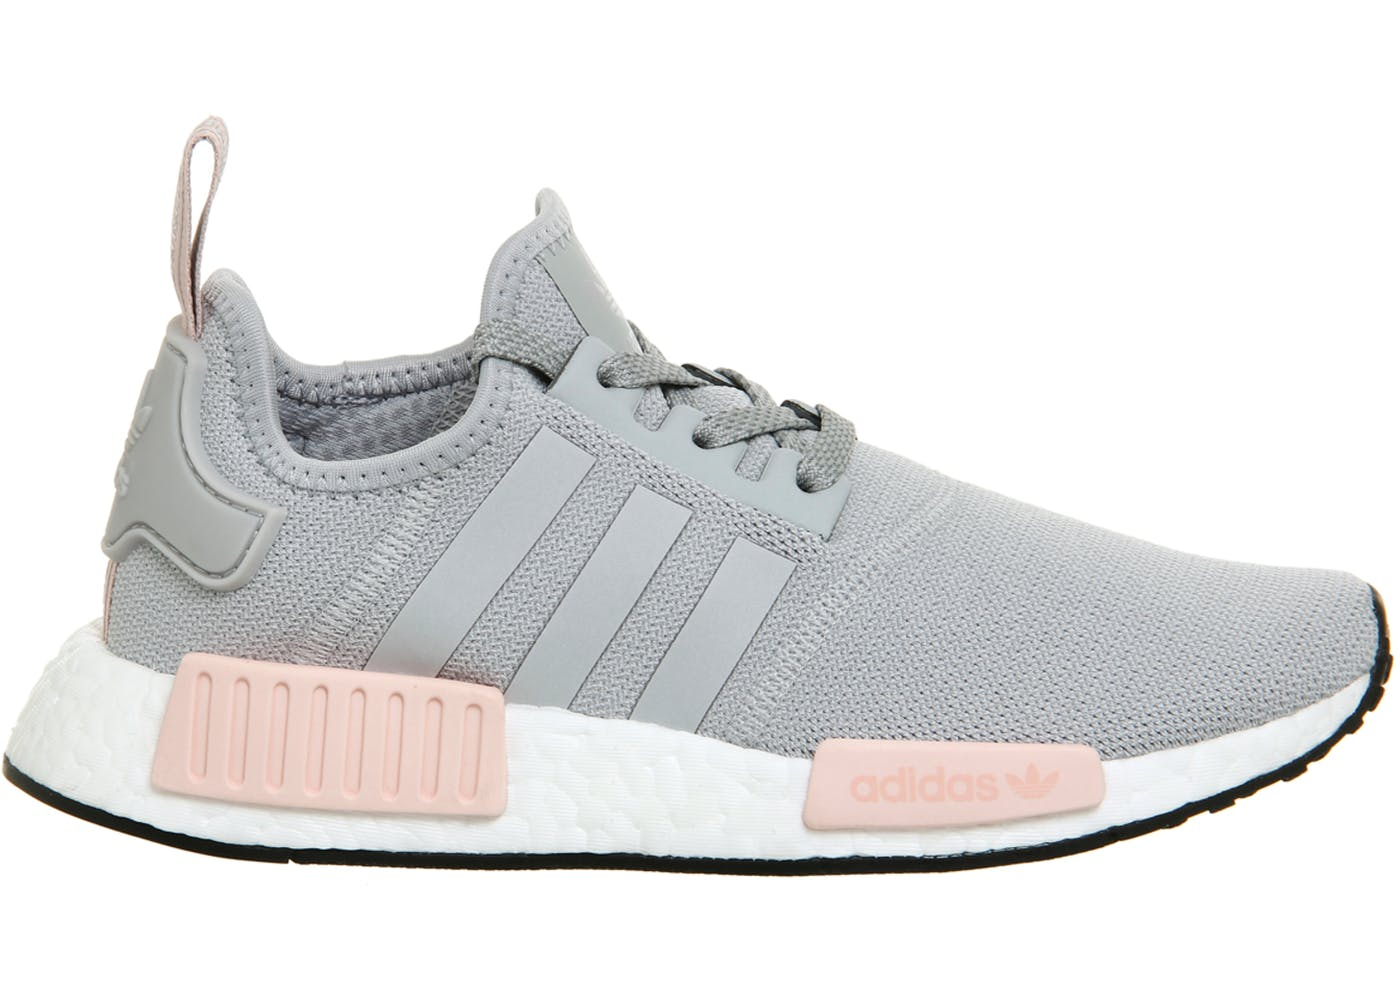 c4ba59987 Adidas Nmd R1 Vapour Pink kenmore-cleaning.co.uk